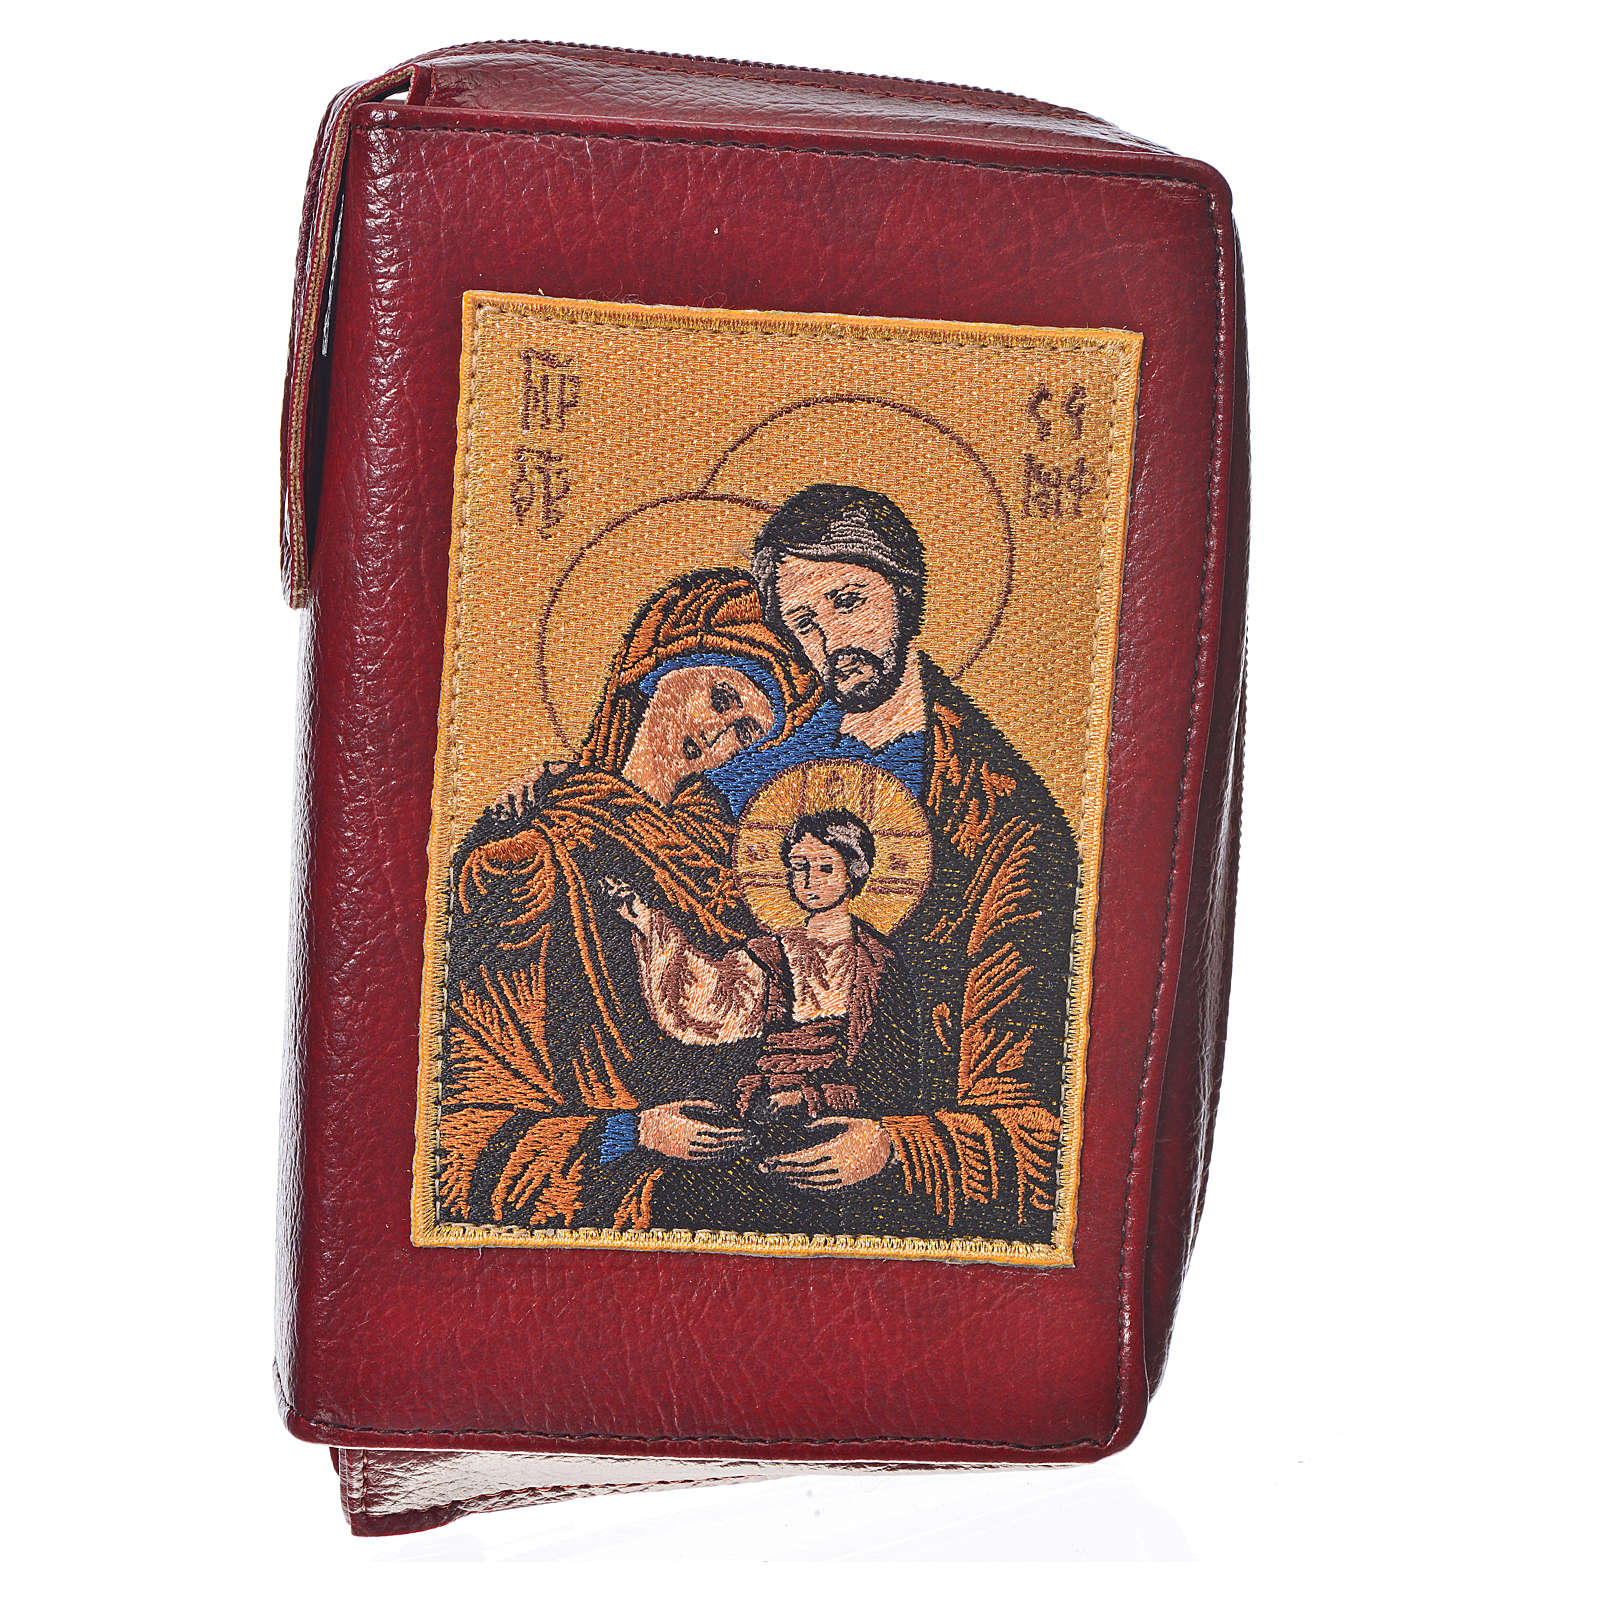 Funda Sagrada Biblia CEE ED. Pop. burdeos simil cuero Sagrada F. 4